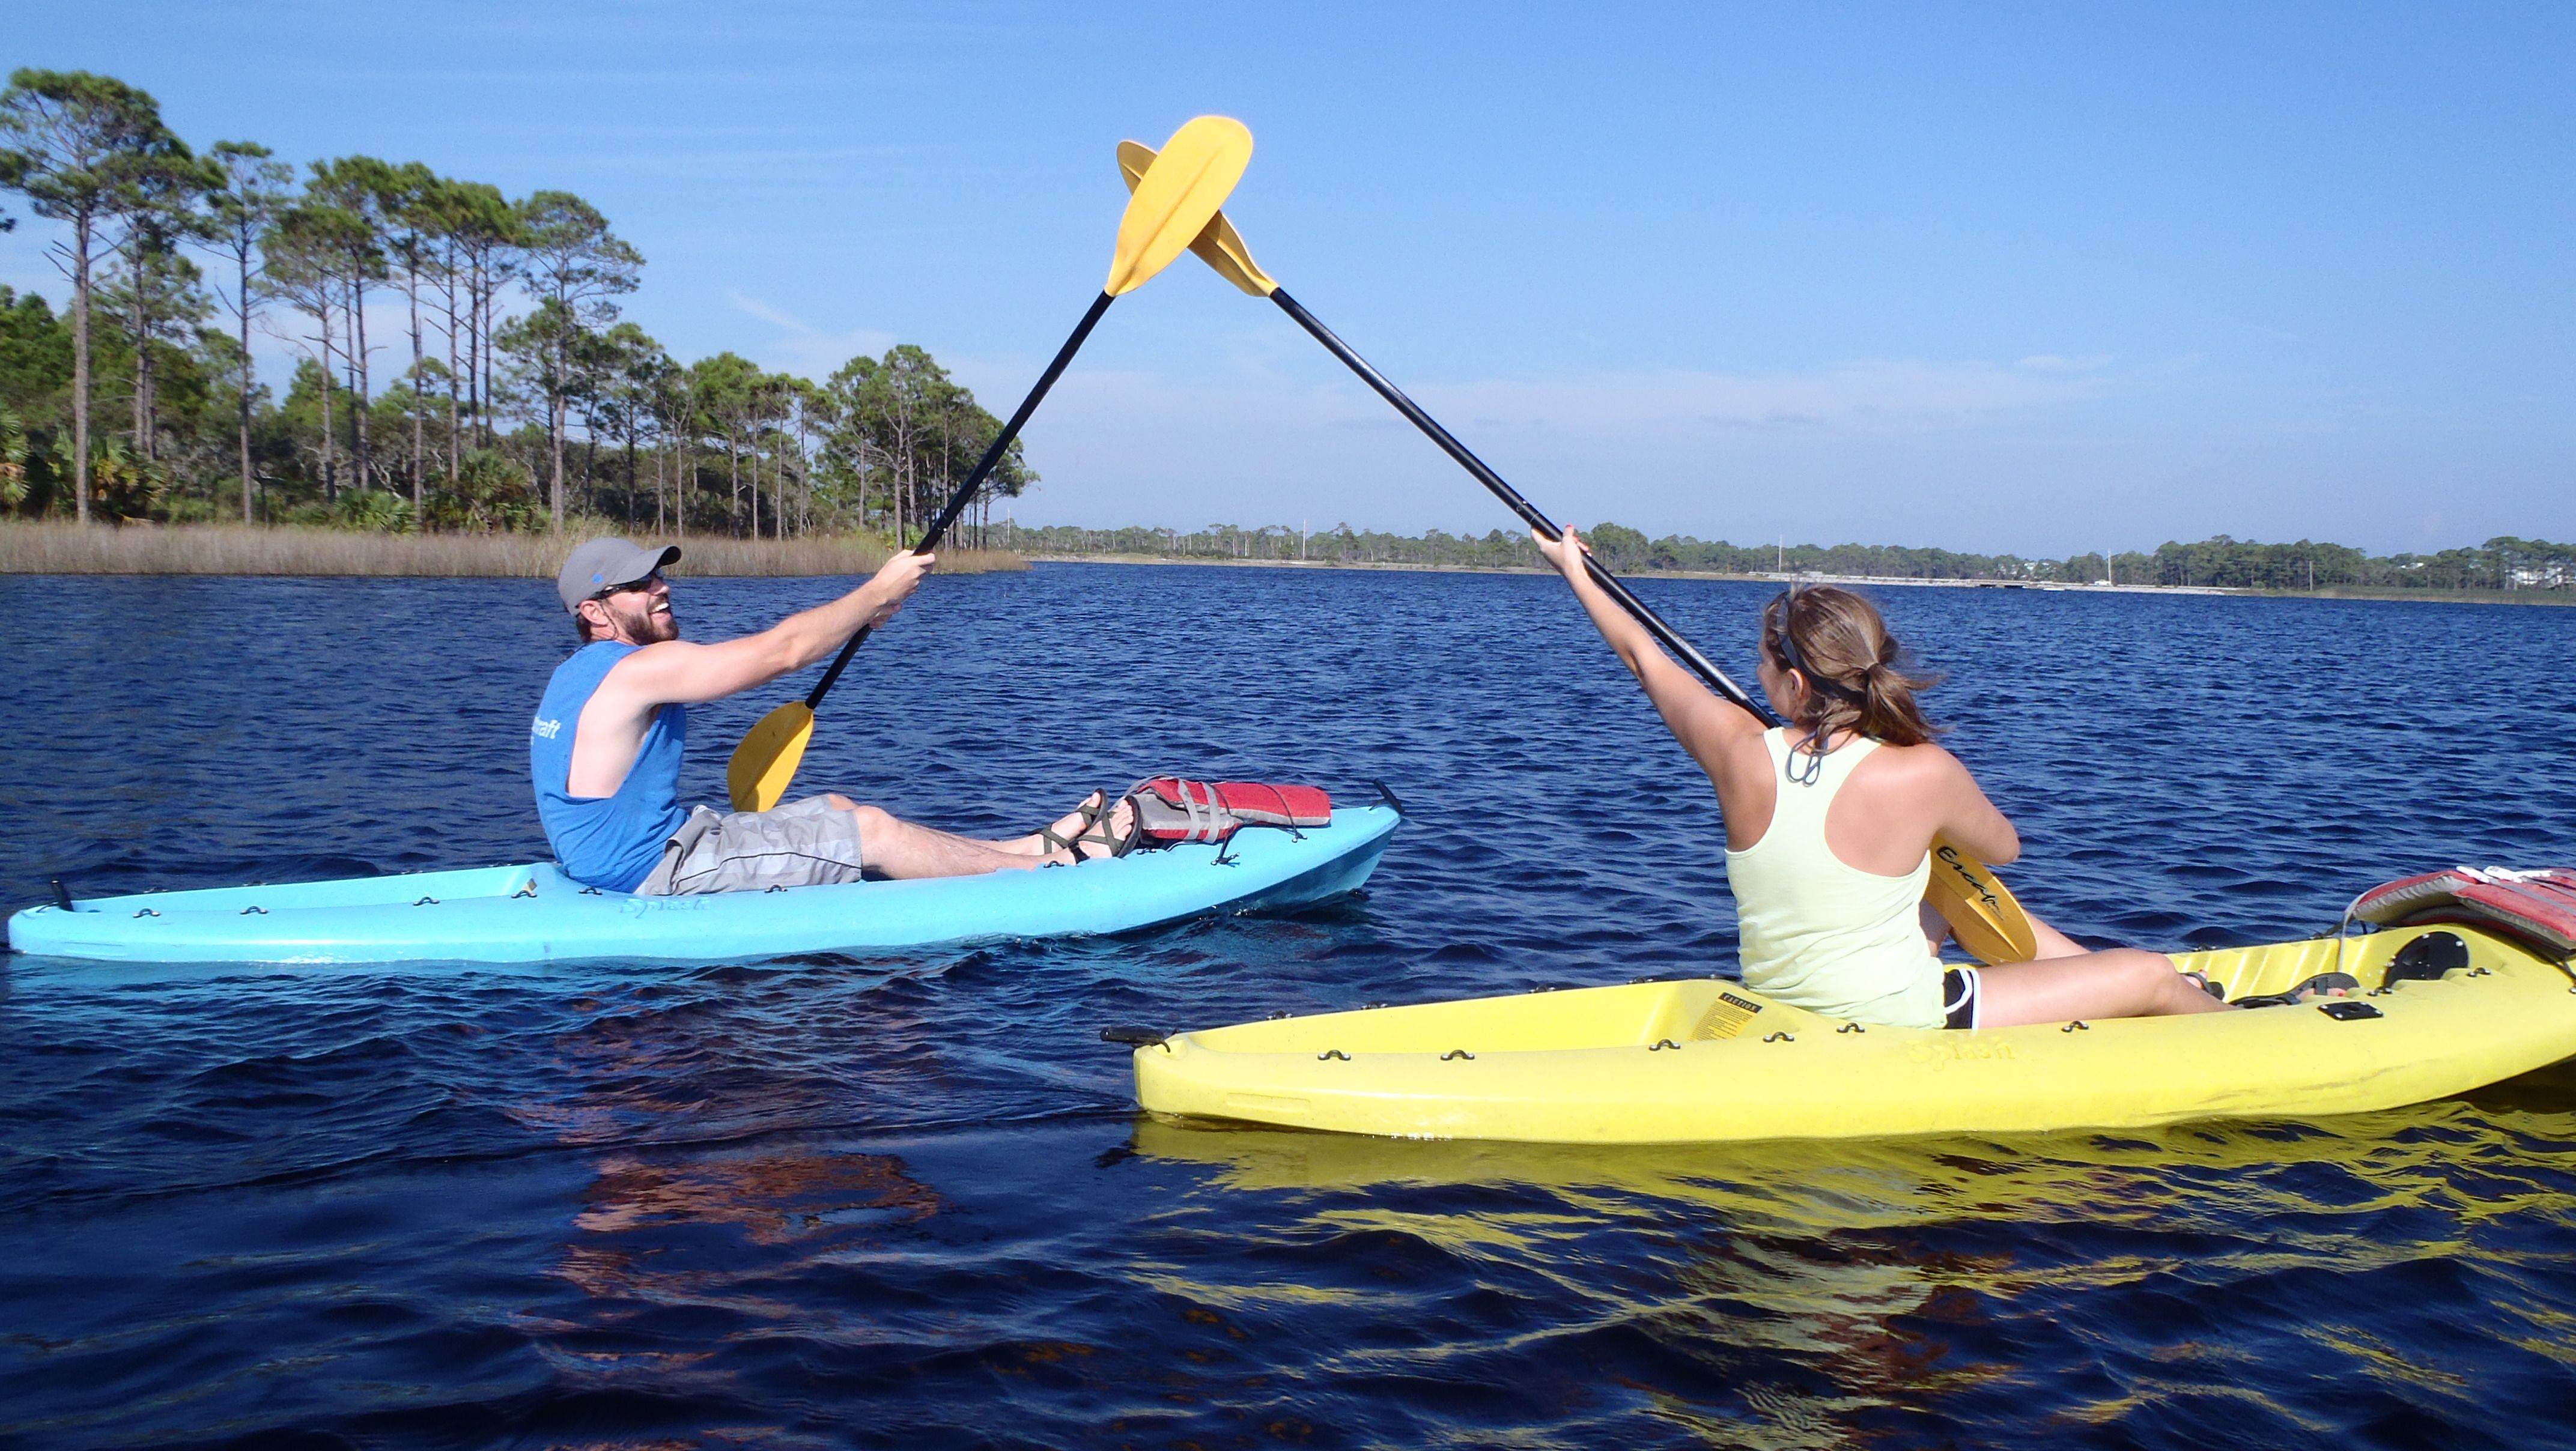 KayakS hOPEFULLY ONE DAY THIS WILL BE ME N MY LOVE WE